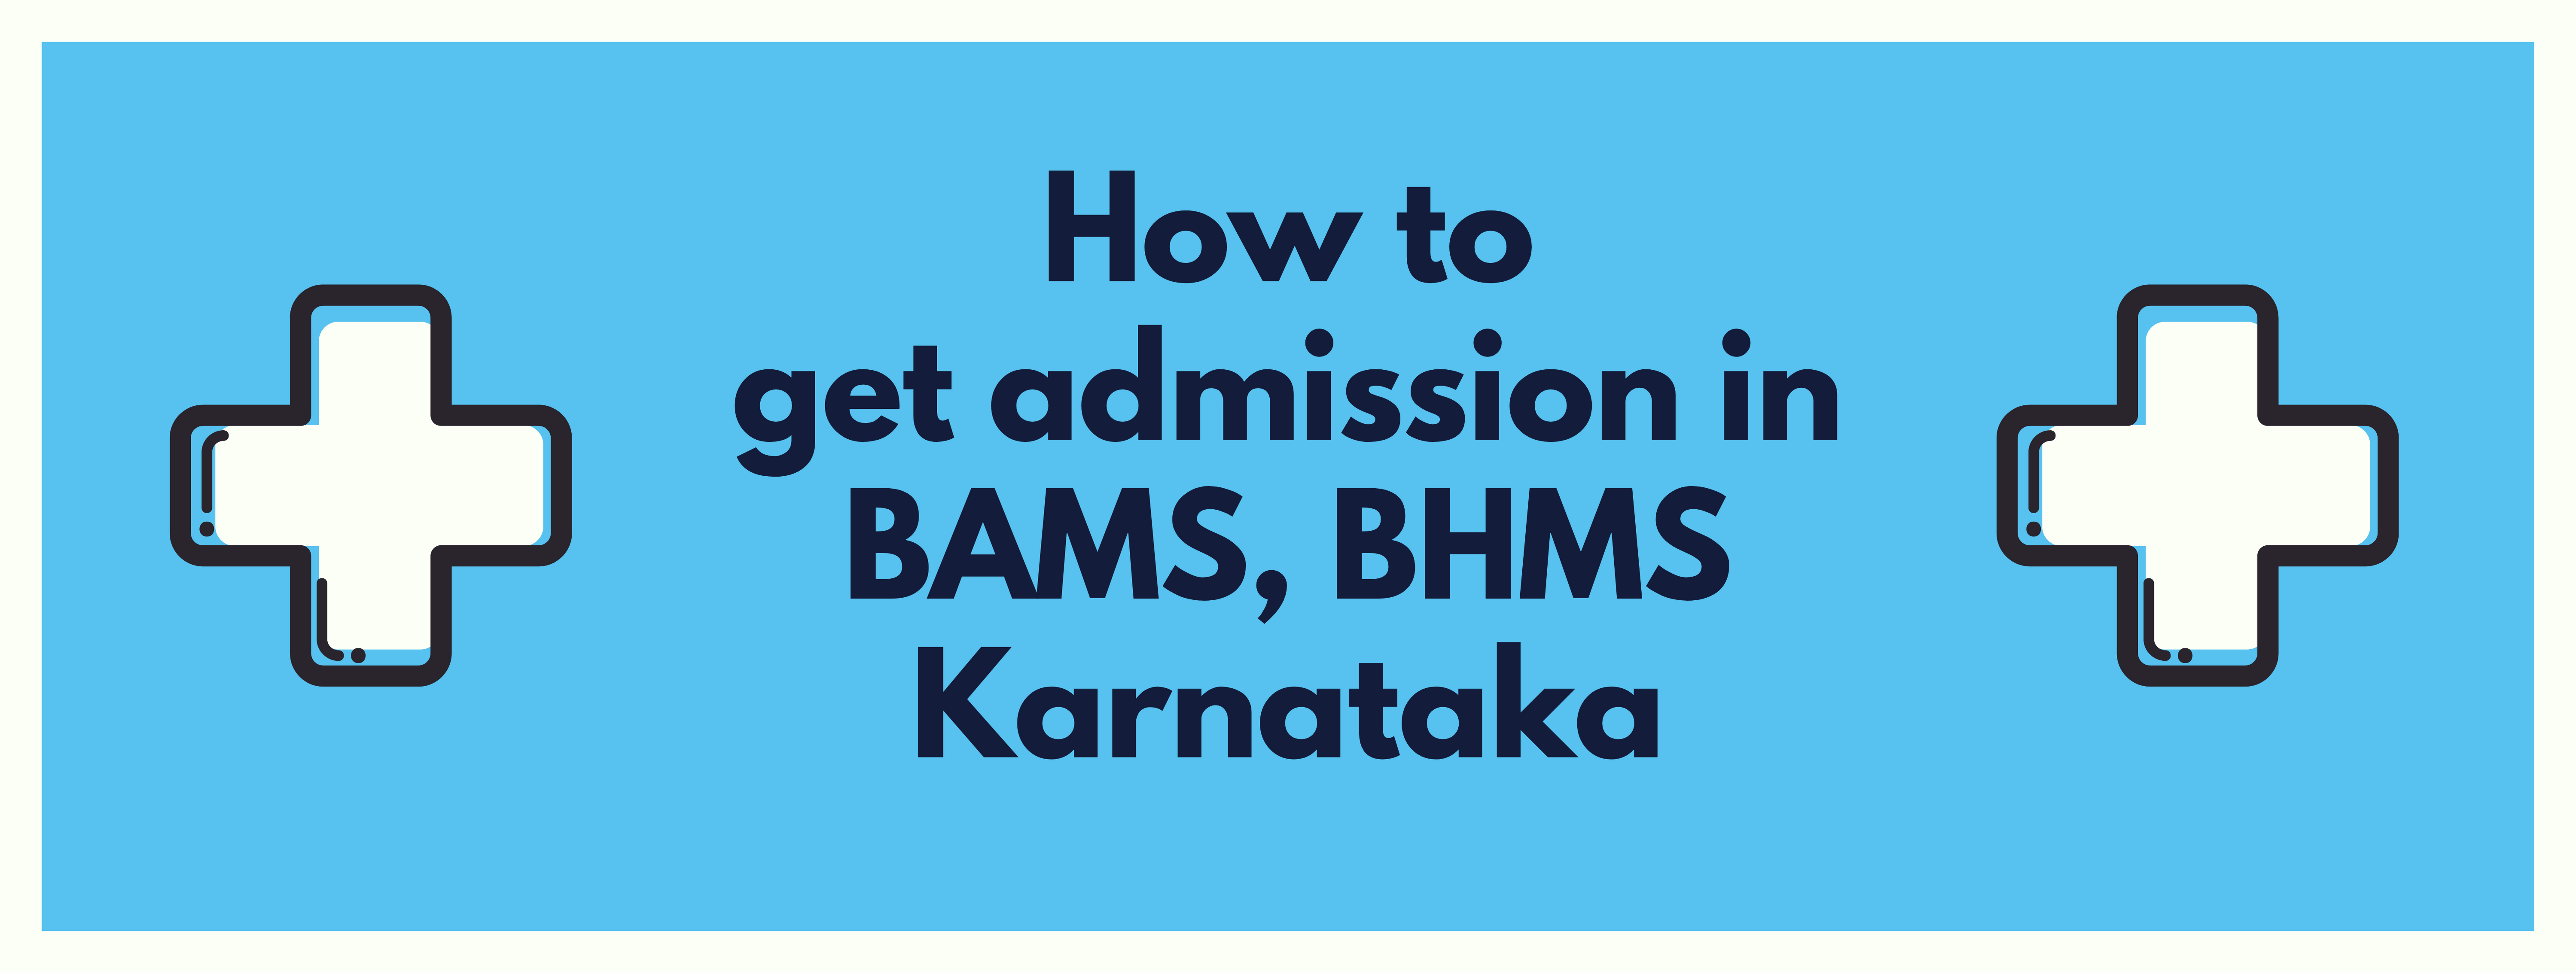 How to get admission in Bams, Bhms Karnataka